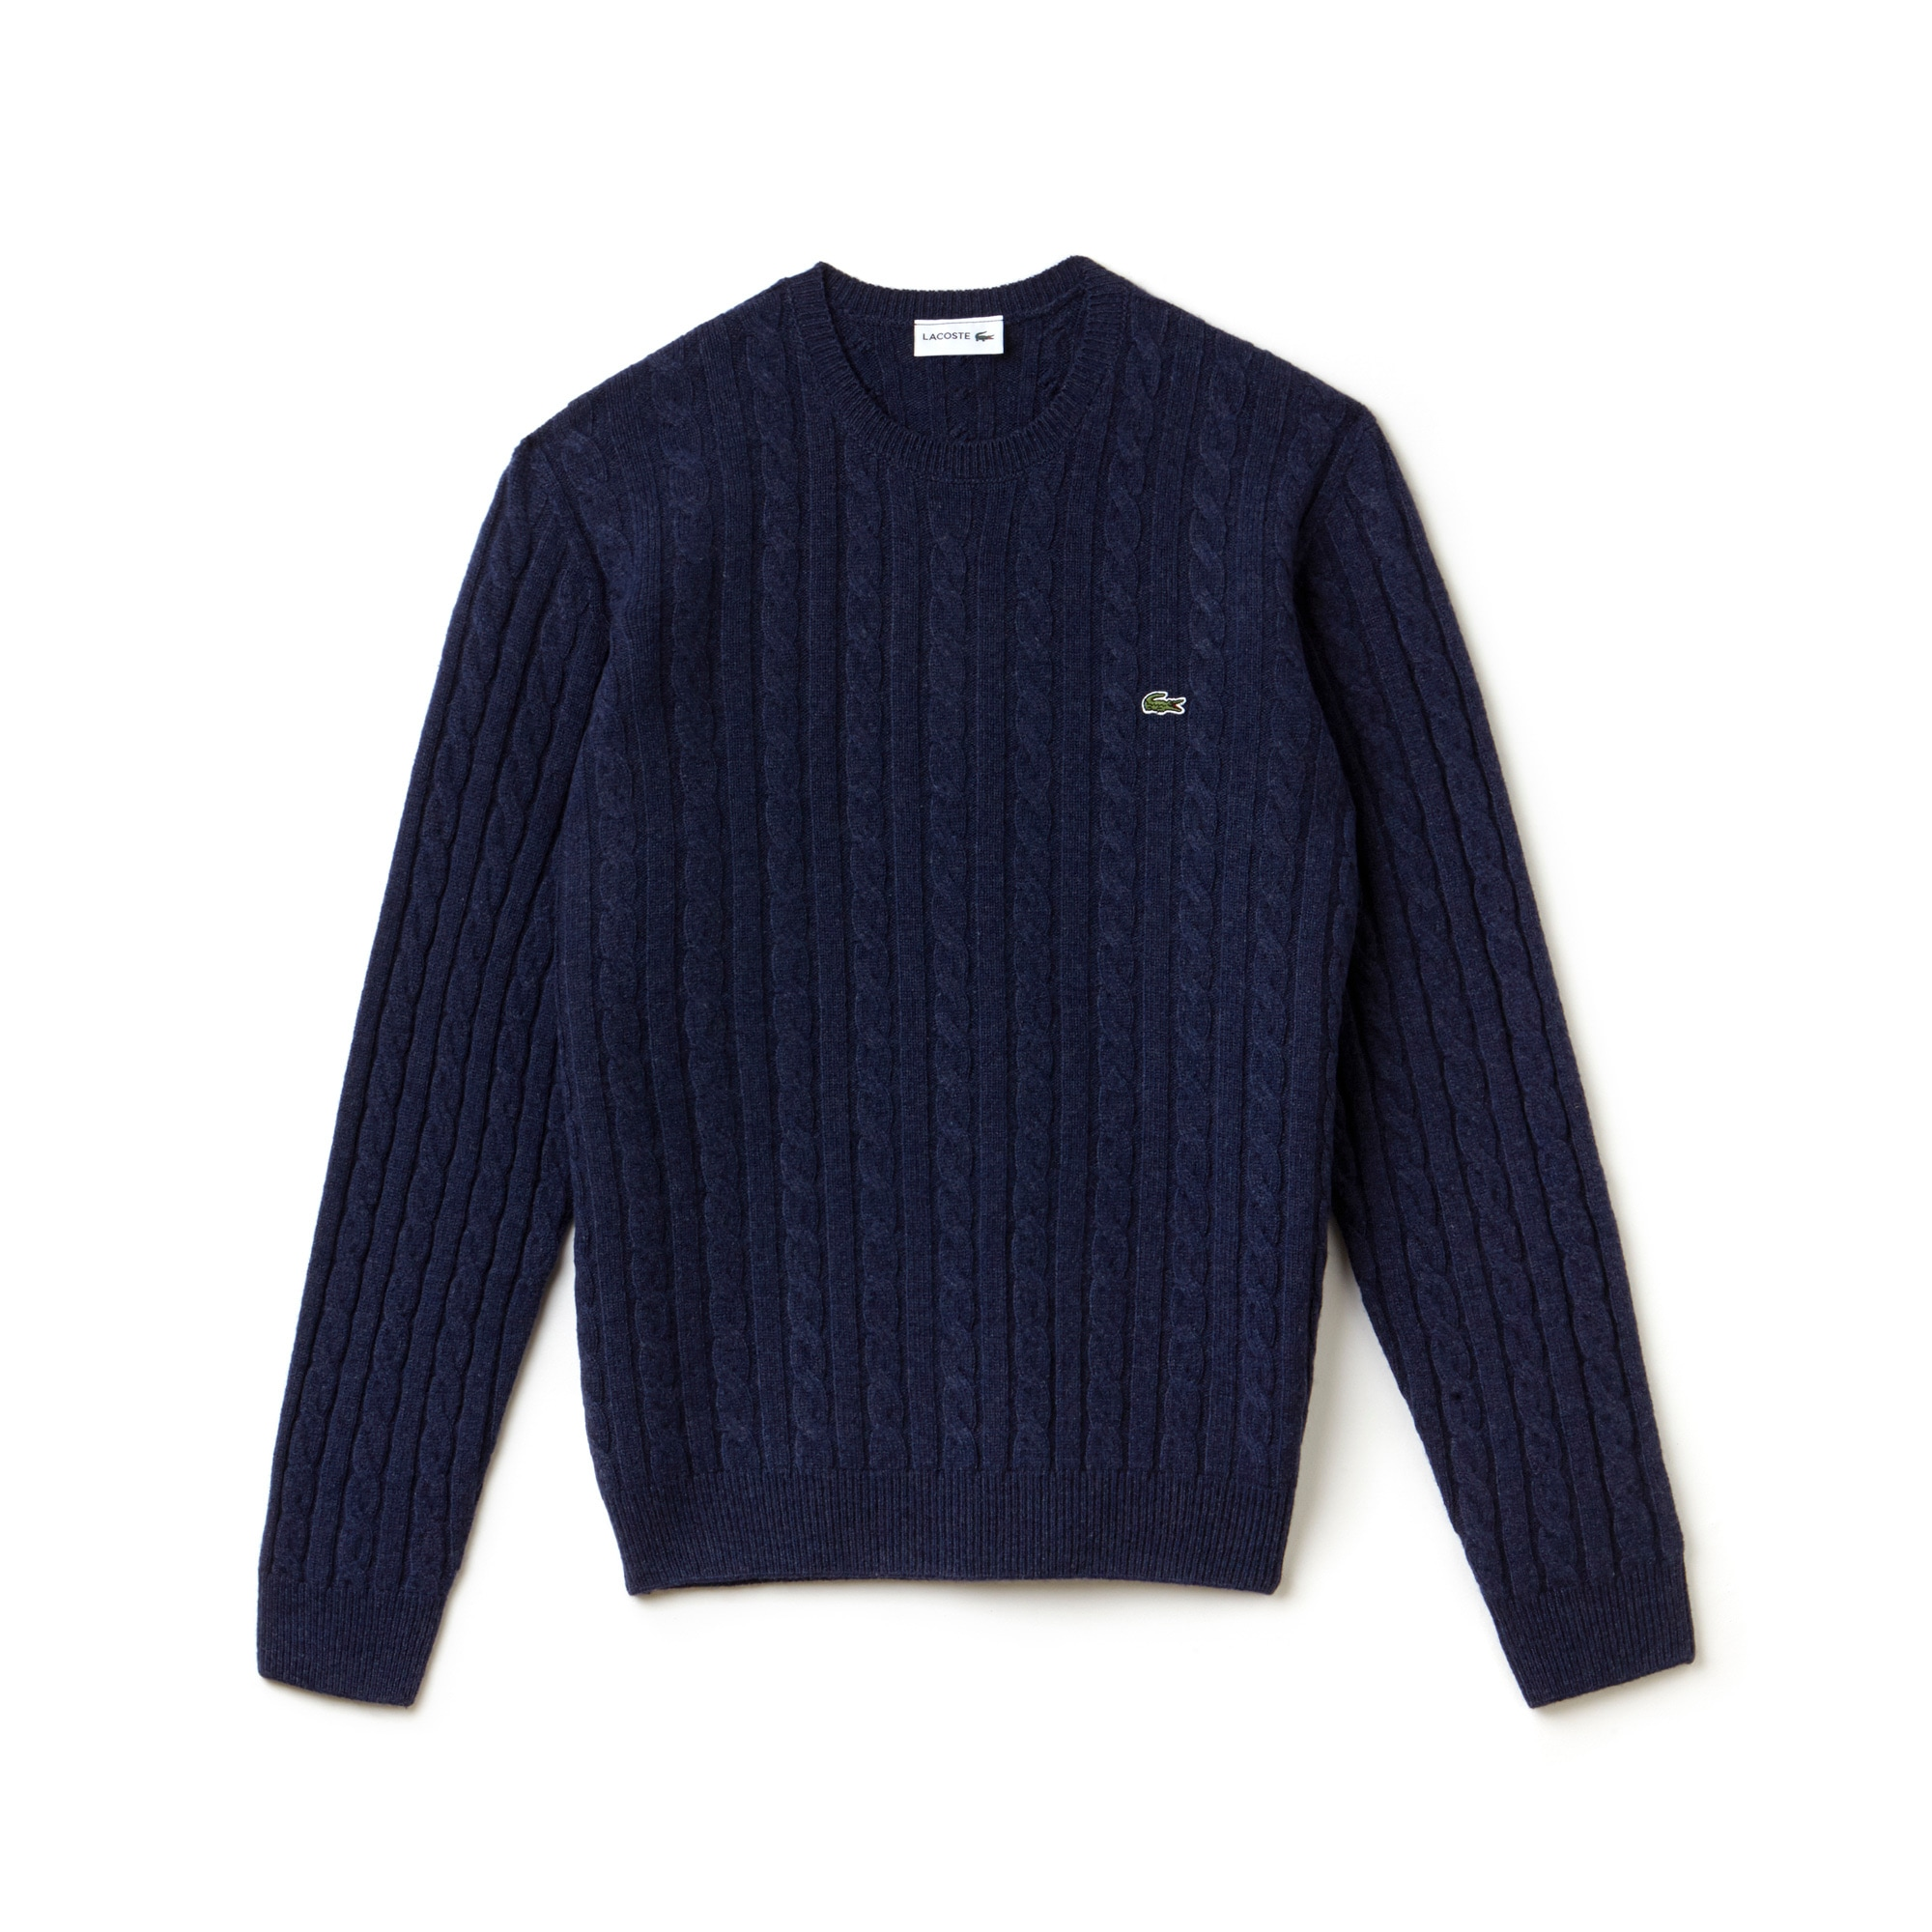 Men's Crew Neck Wool Cable Knit Effect Sweater | LACOSTE